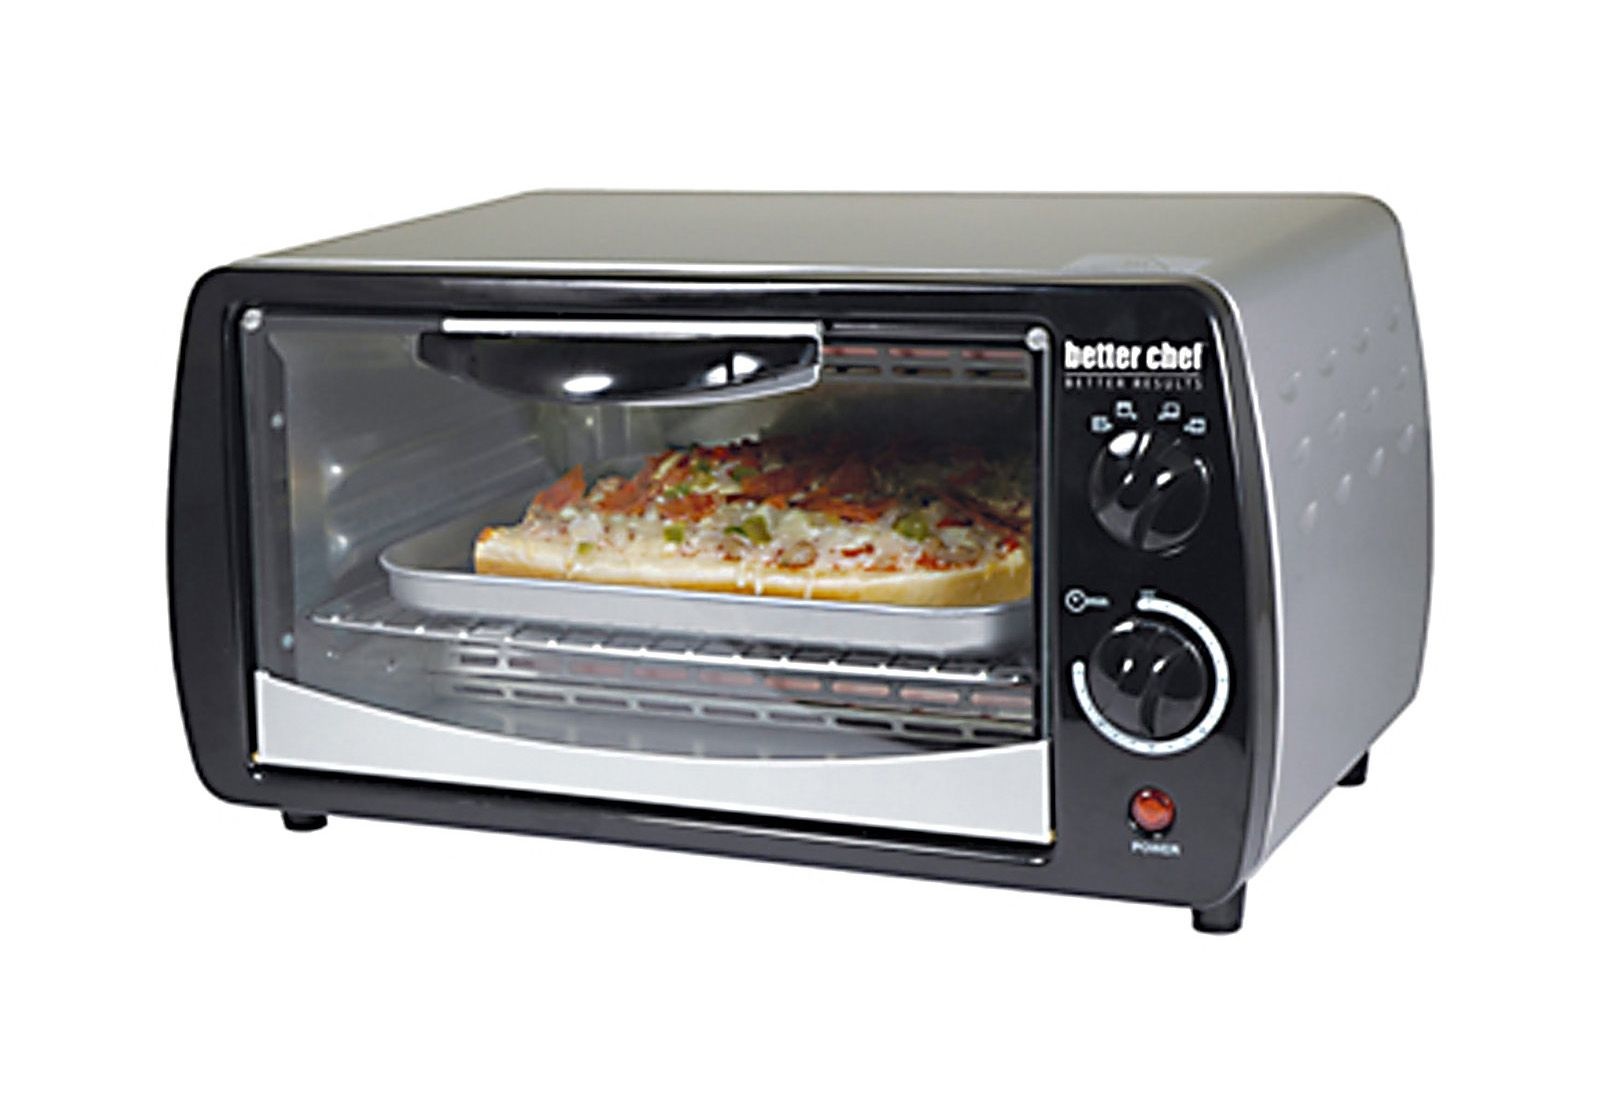 Teenyweeny Product Better Chef Im 266b Black 9 Liter Toaster Oven Us 40 00 Toaster Oven Stainless Steel Toaster Toaster